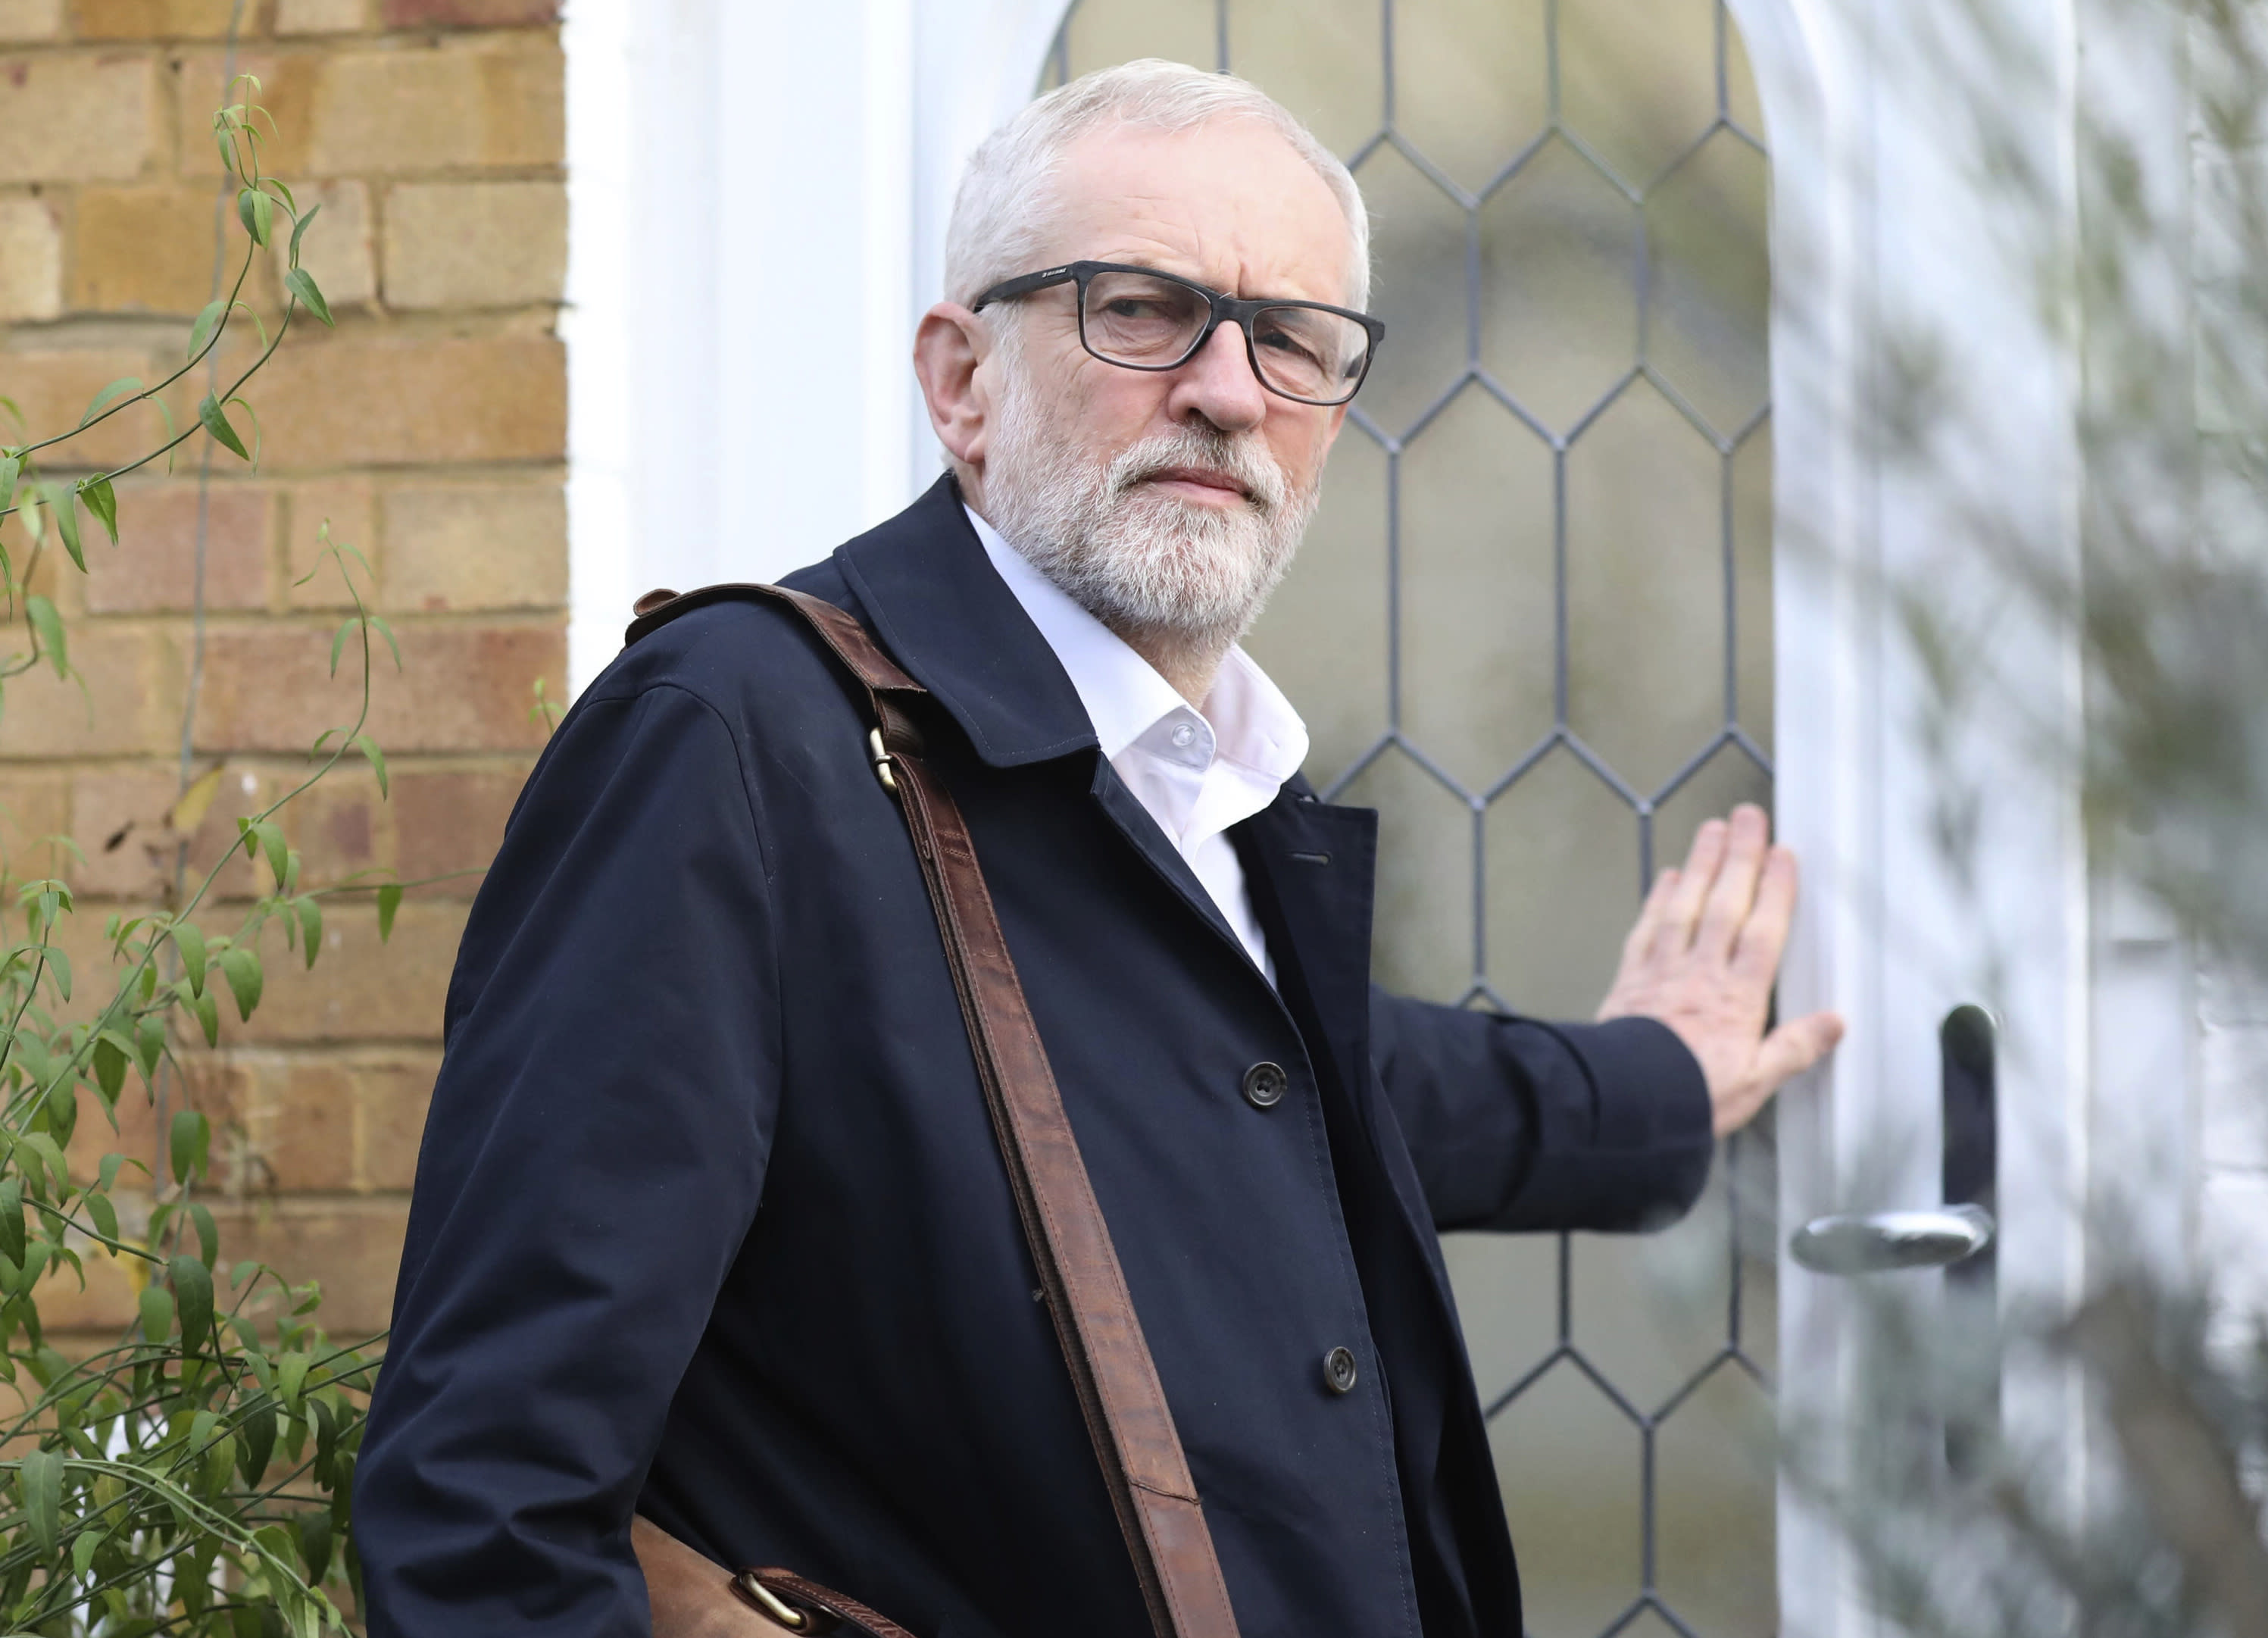 Labour Party leader Jeremy Corbyn leaves his home in Islington, north London, Monday, Dec. 16, 2019. (Isabel Infantes/PA via AP)